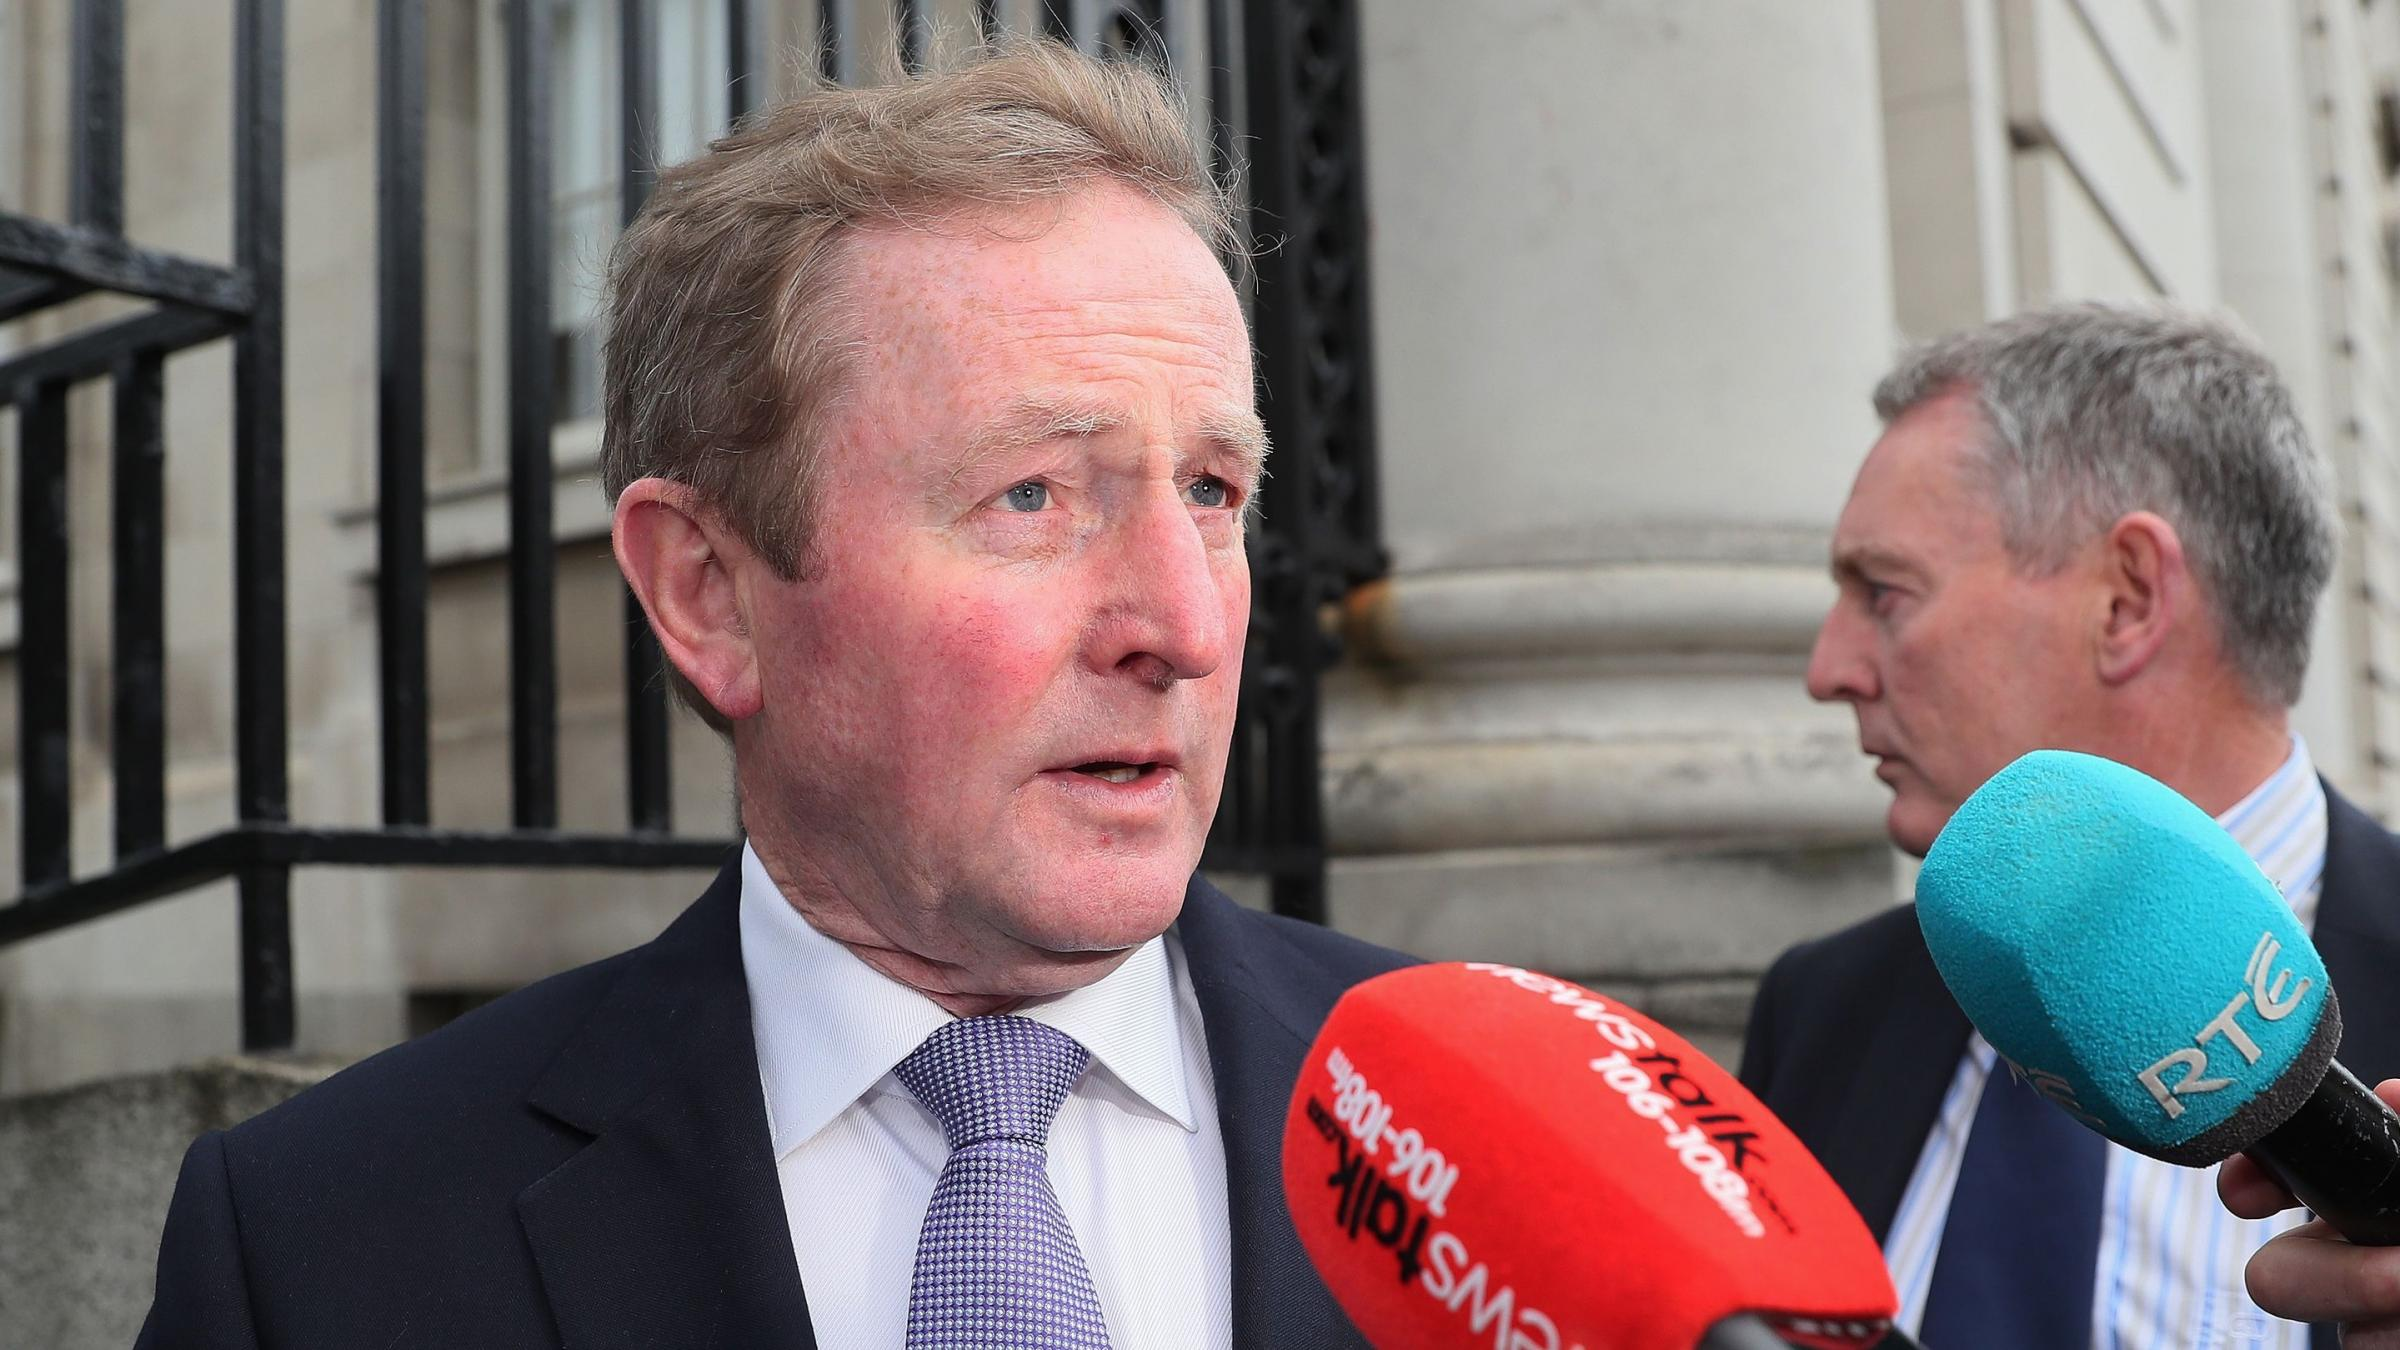 Ireland's First Openly Gay Prime Minister Seeks Abortion Expansion